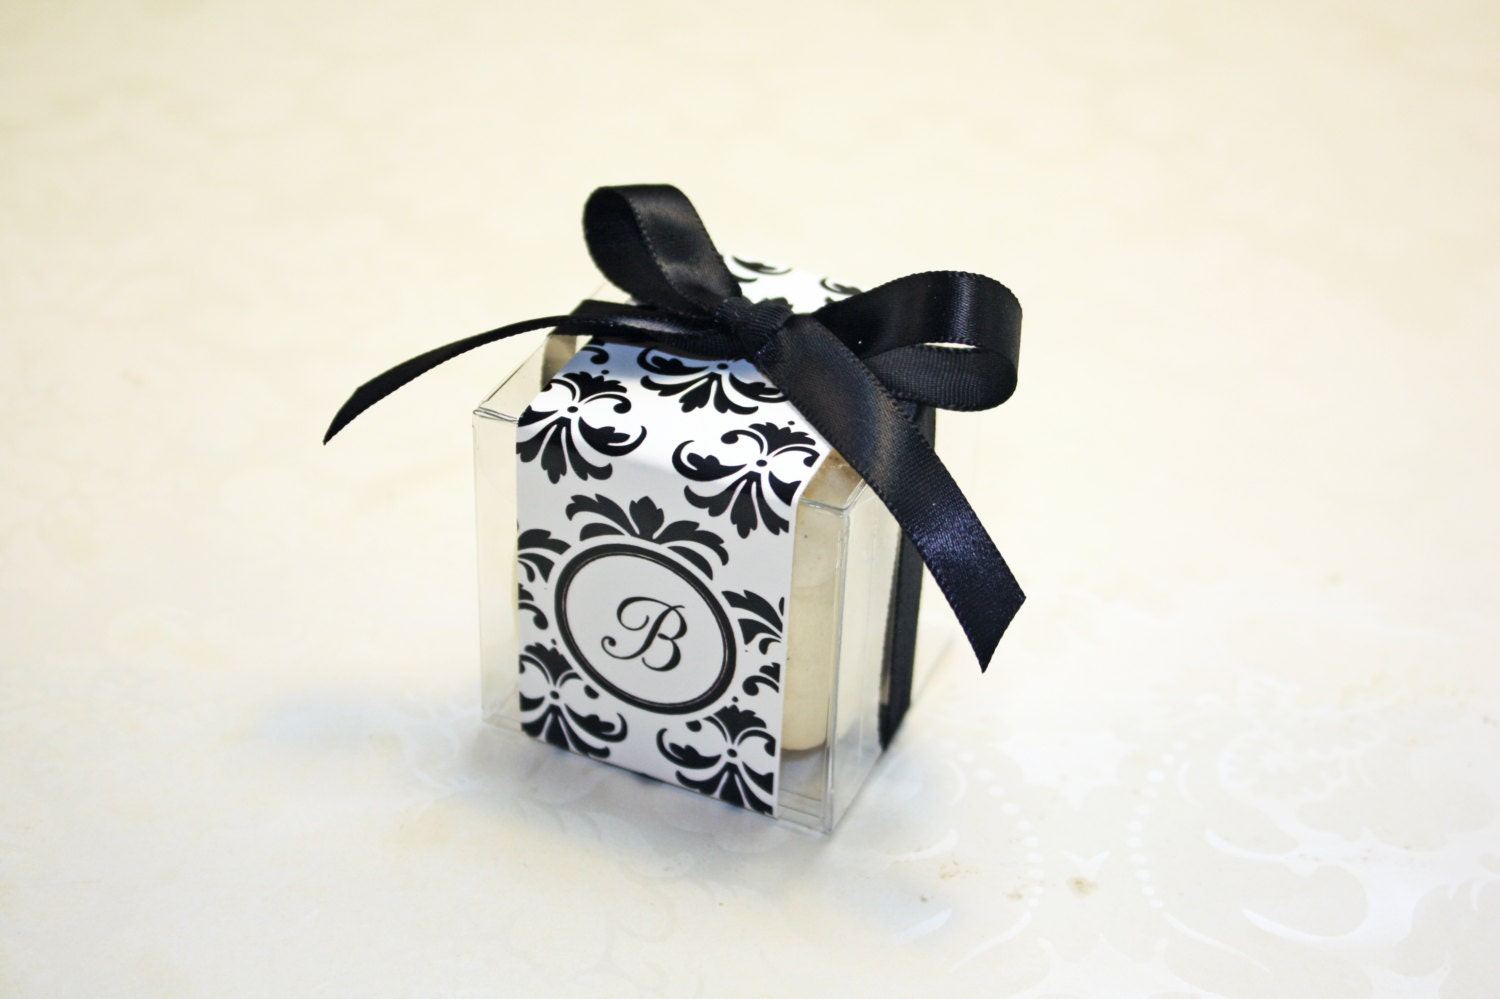 Black And White Damask Favor Boxes : Damask macaron favor boxes black and white